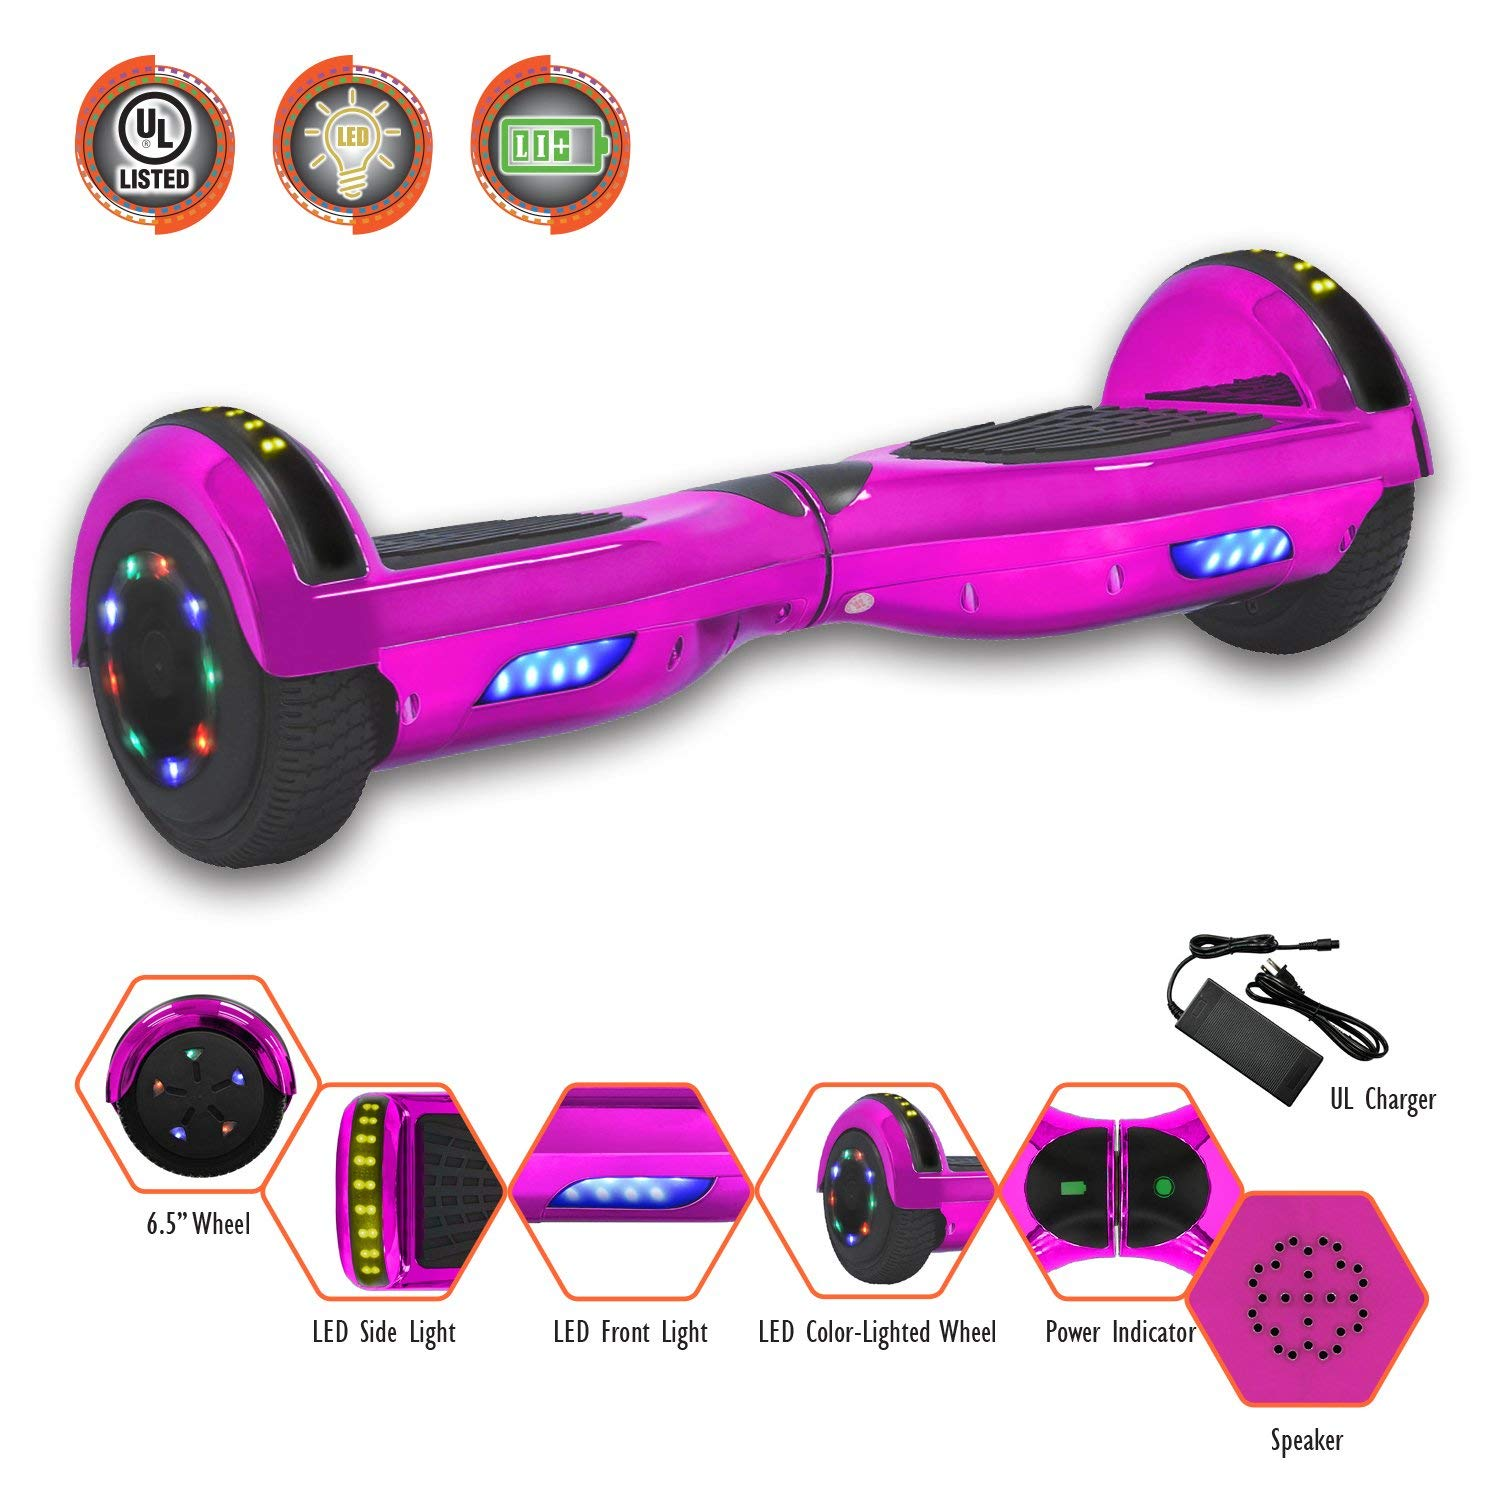 "SMART BALANCE 6.5"" HOVERBOARD WITH BLUETOOTH - UL 2272 - UN 38.3 SAFETY CERTIFIED PERSONAL TRANSPORTATON"